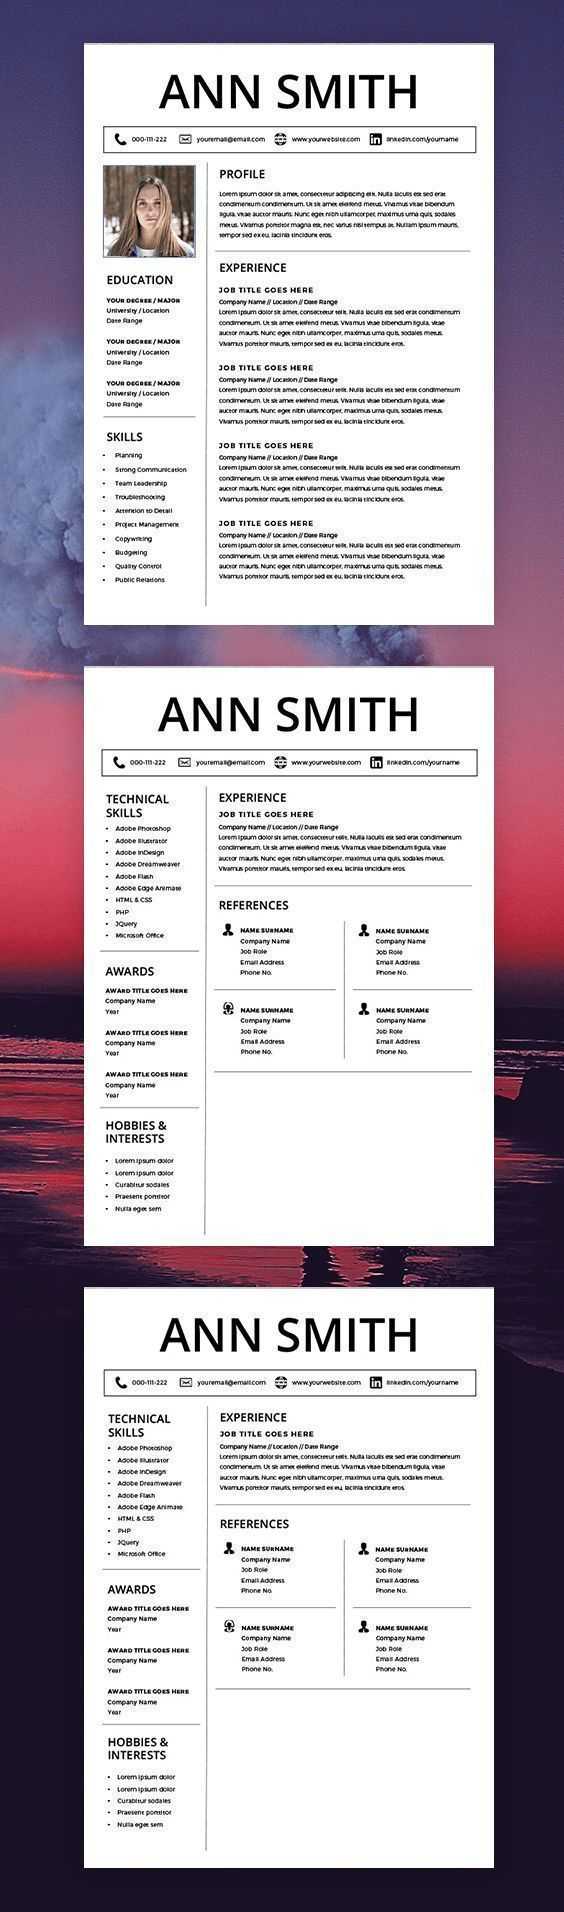 Microsoft Word Resume Template For Mac Curriculum Vitae Template  Cv Template  Cover Letter  Ms Word Mac .